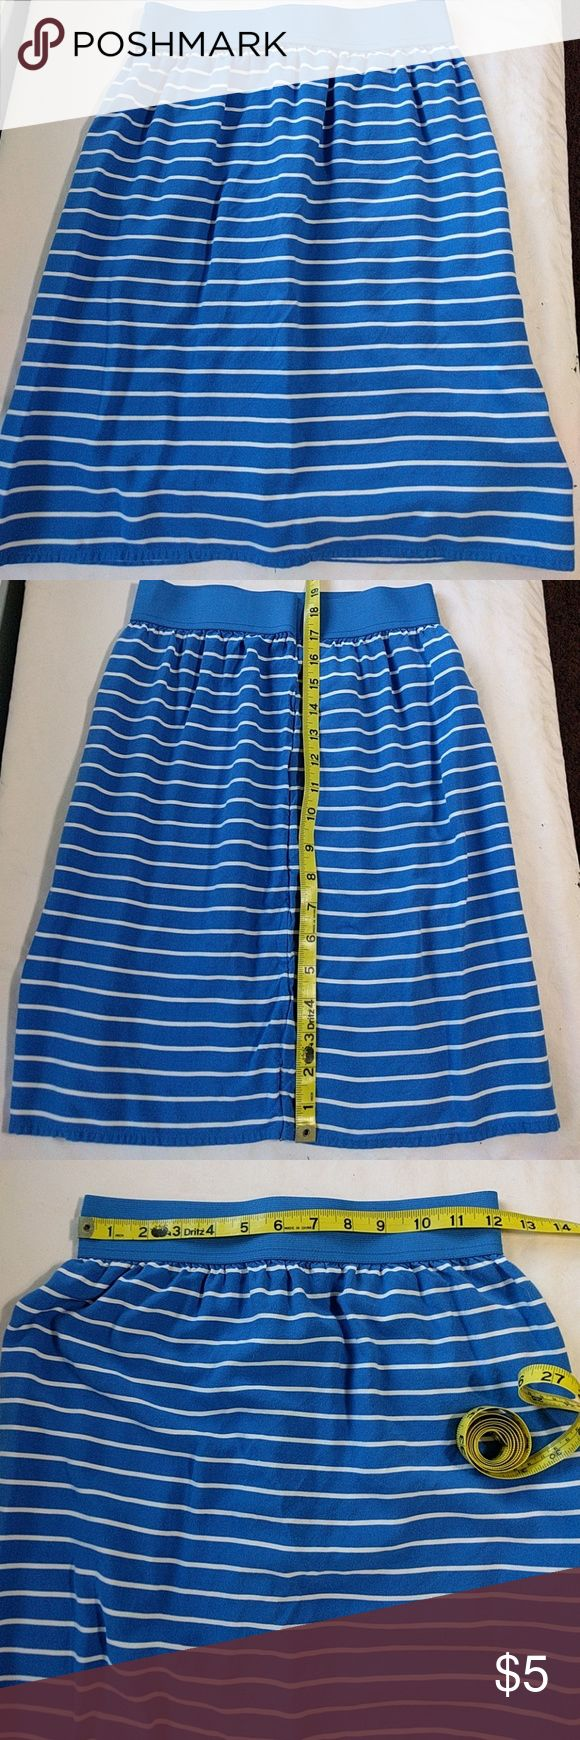 Handmade Skirt Blue cotton skirt with white stripes. Handmade by a friend, but slightly too tight on me. The waist is elastic, but the rest of the skirt isn't stretchy. Super cute, though. handmade Skirts Mini